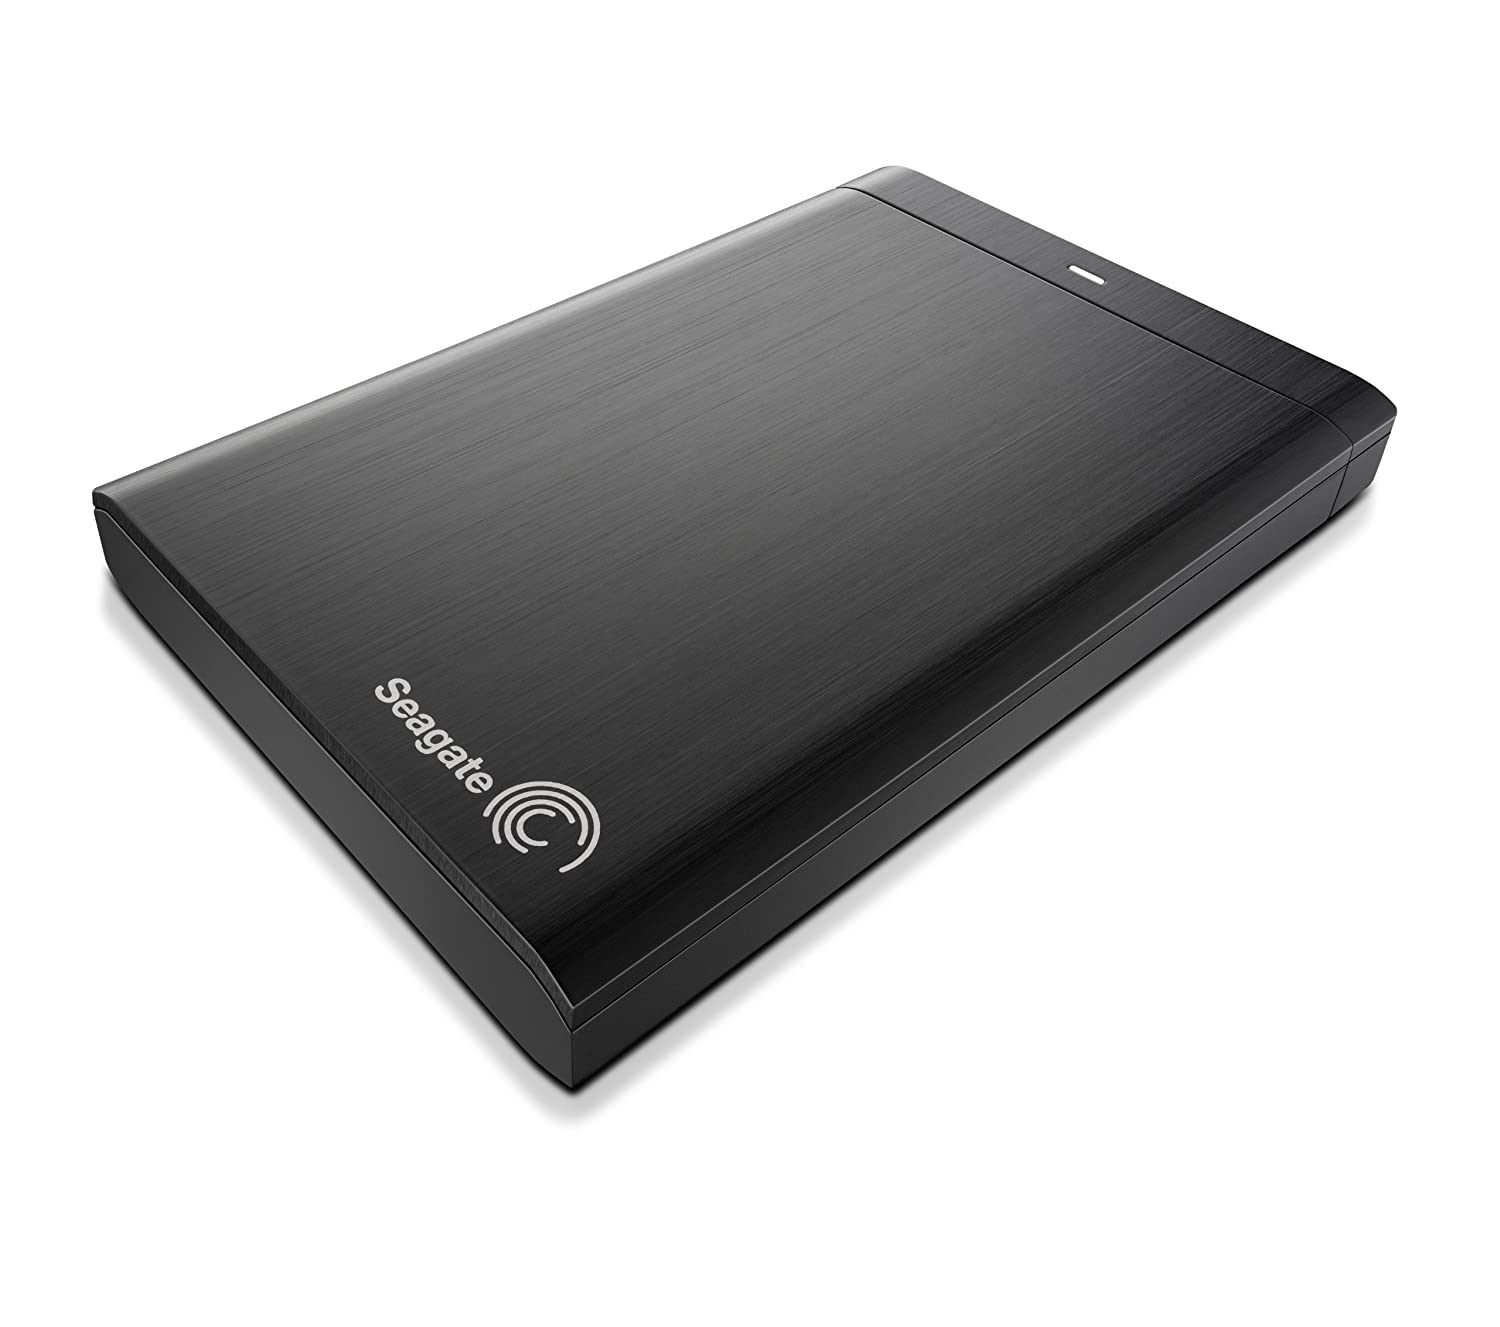 Image result for 500 TB external hard drive